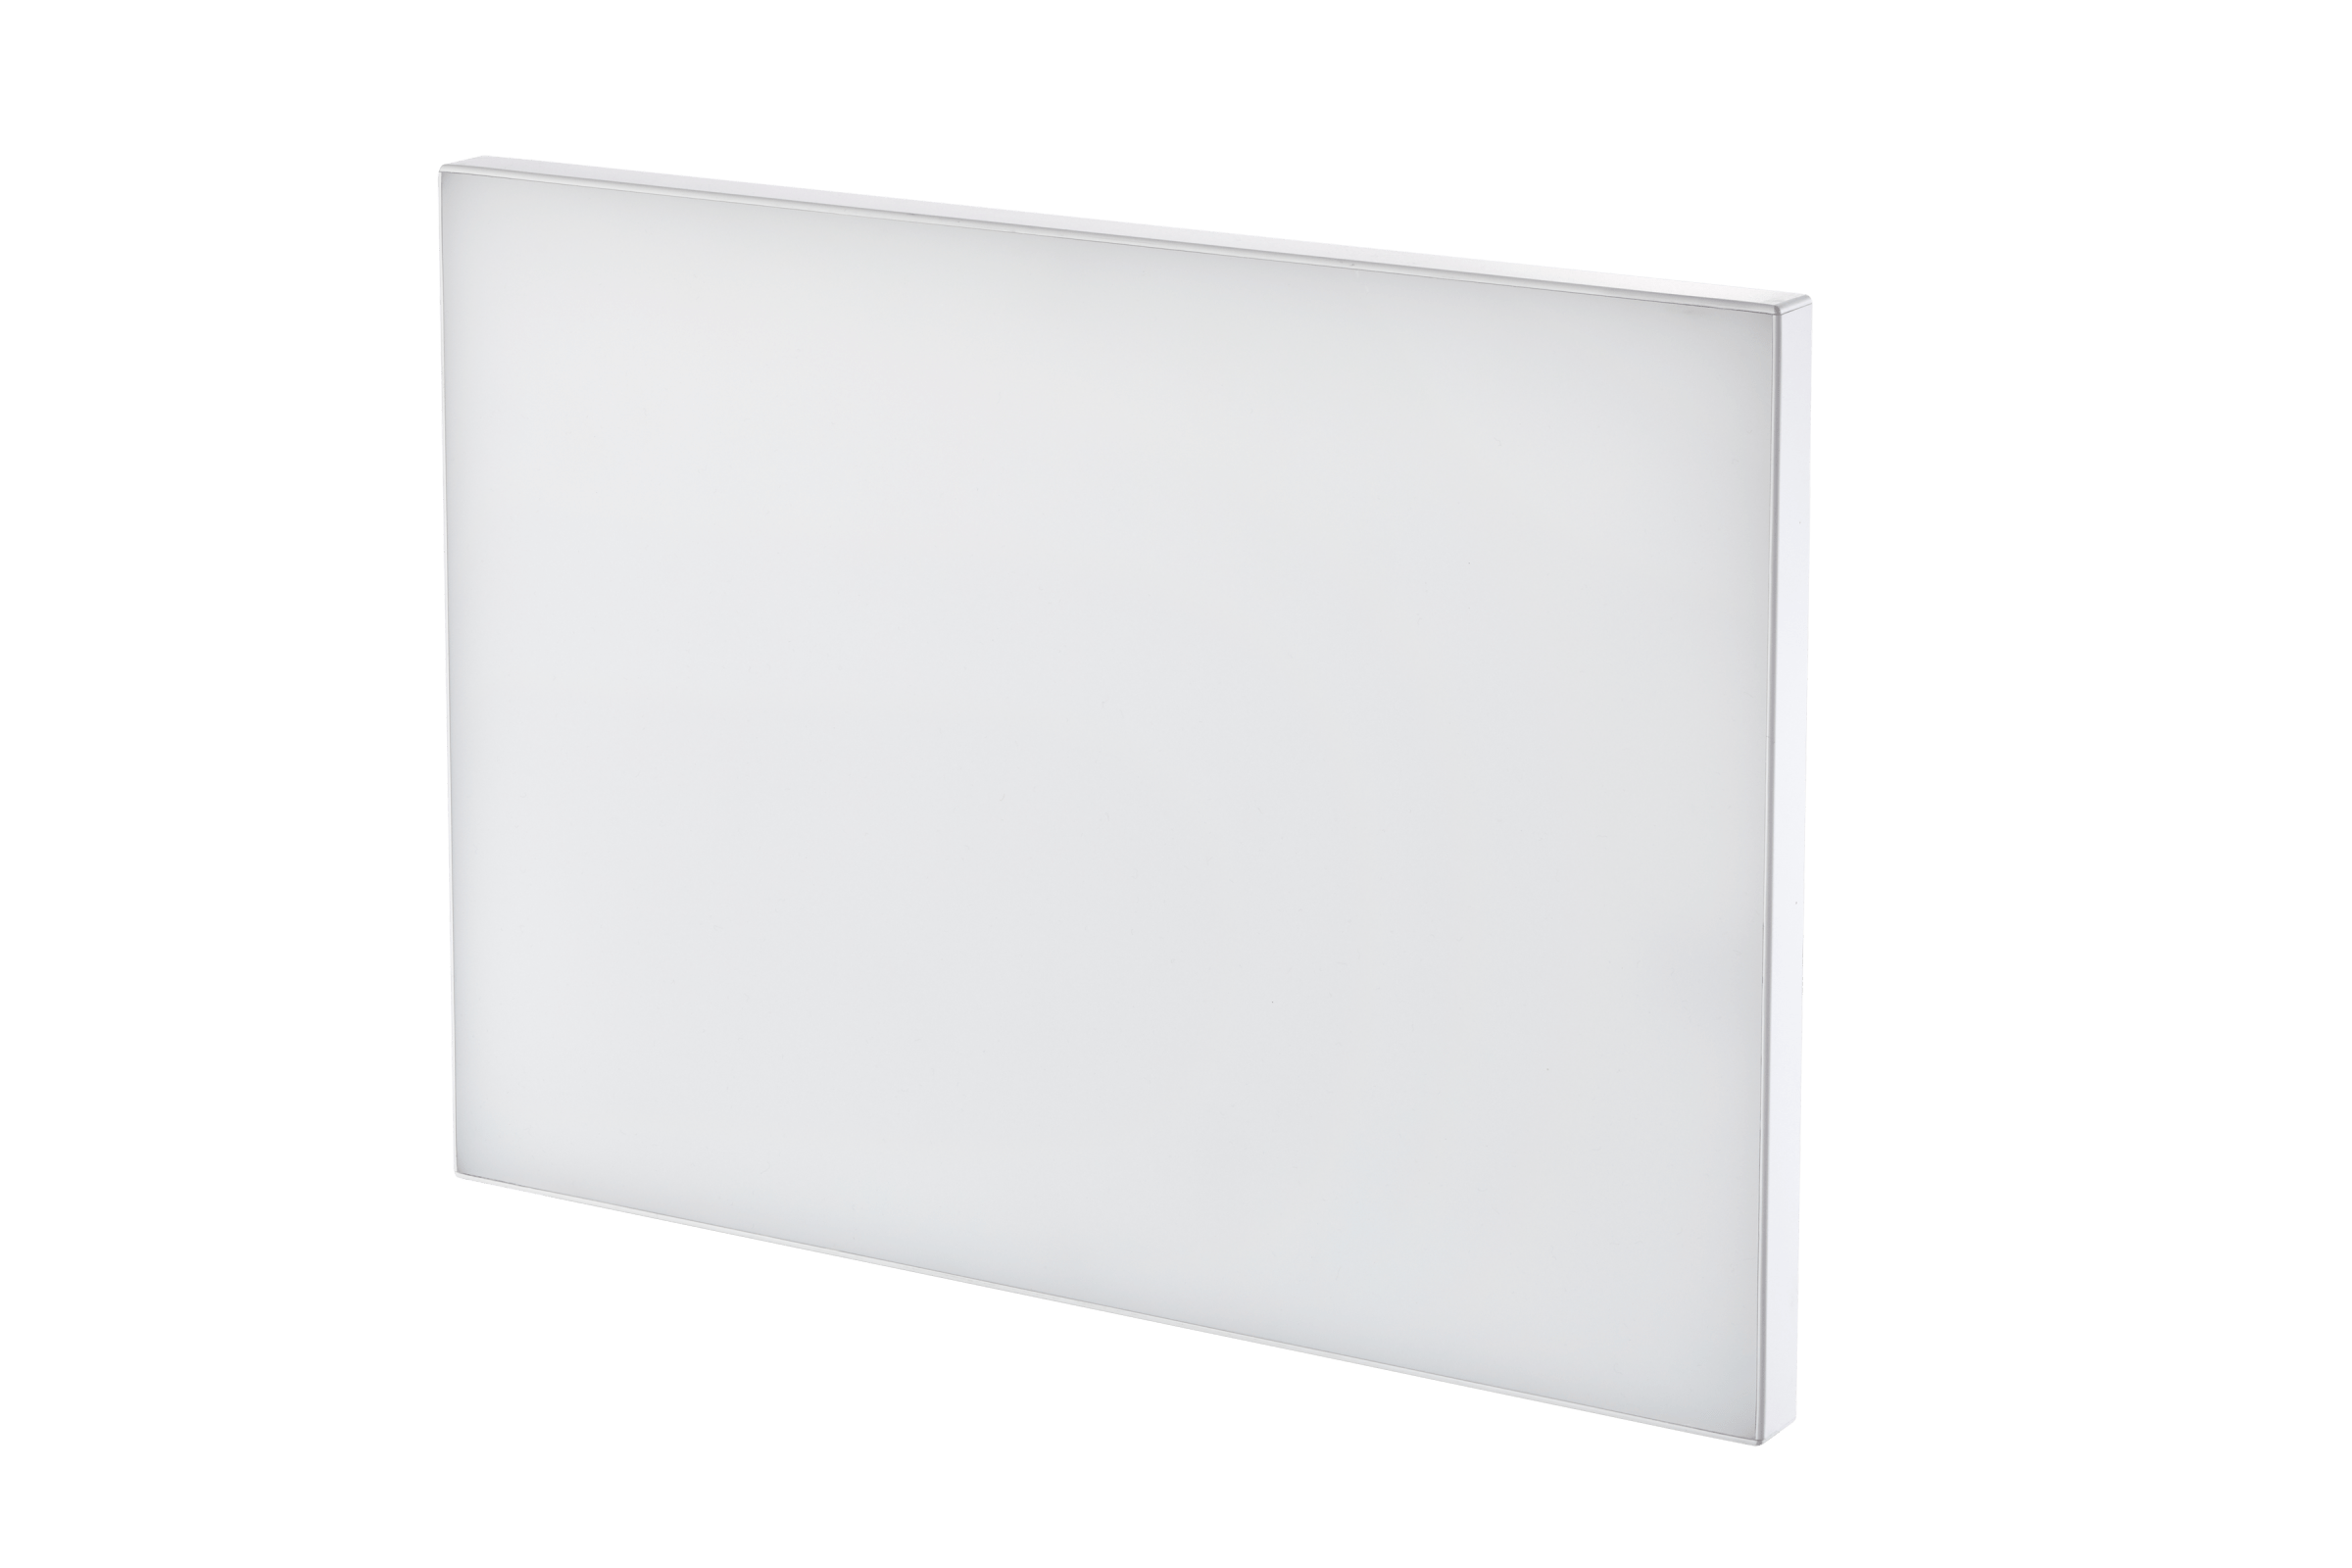 Led Lichtpanel Led Panel Randlos Lichtloesung